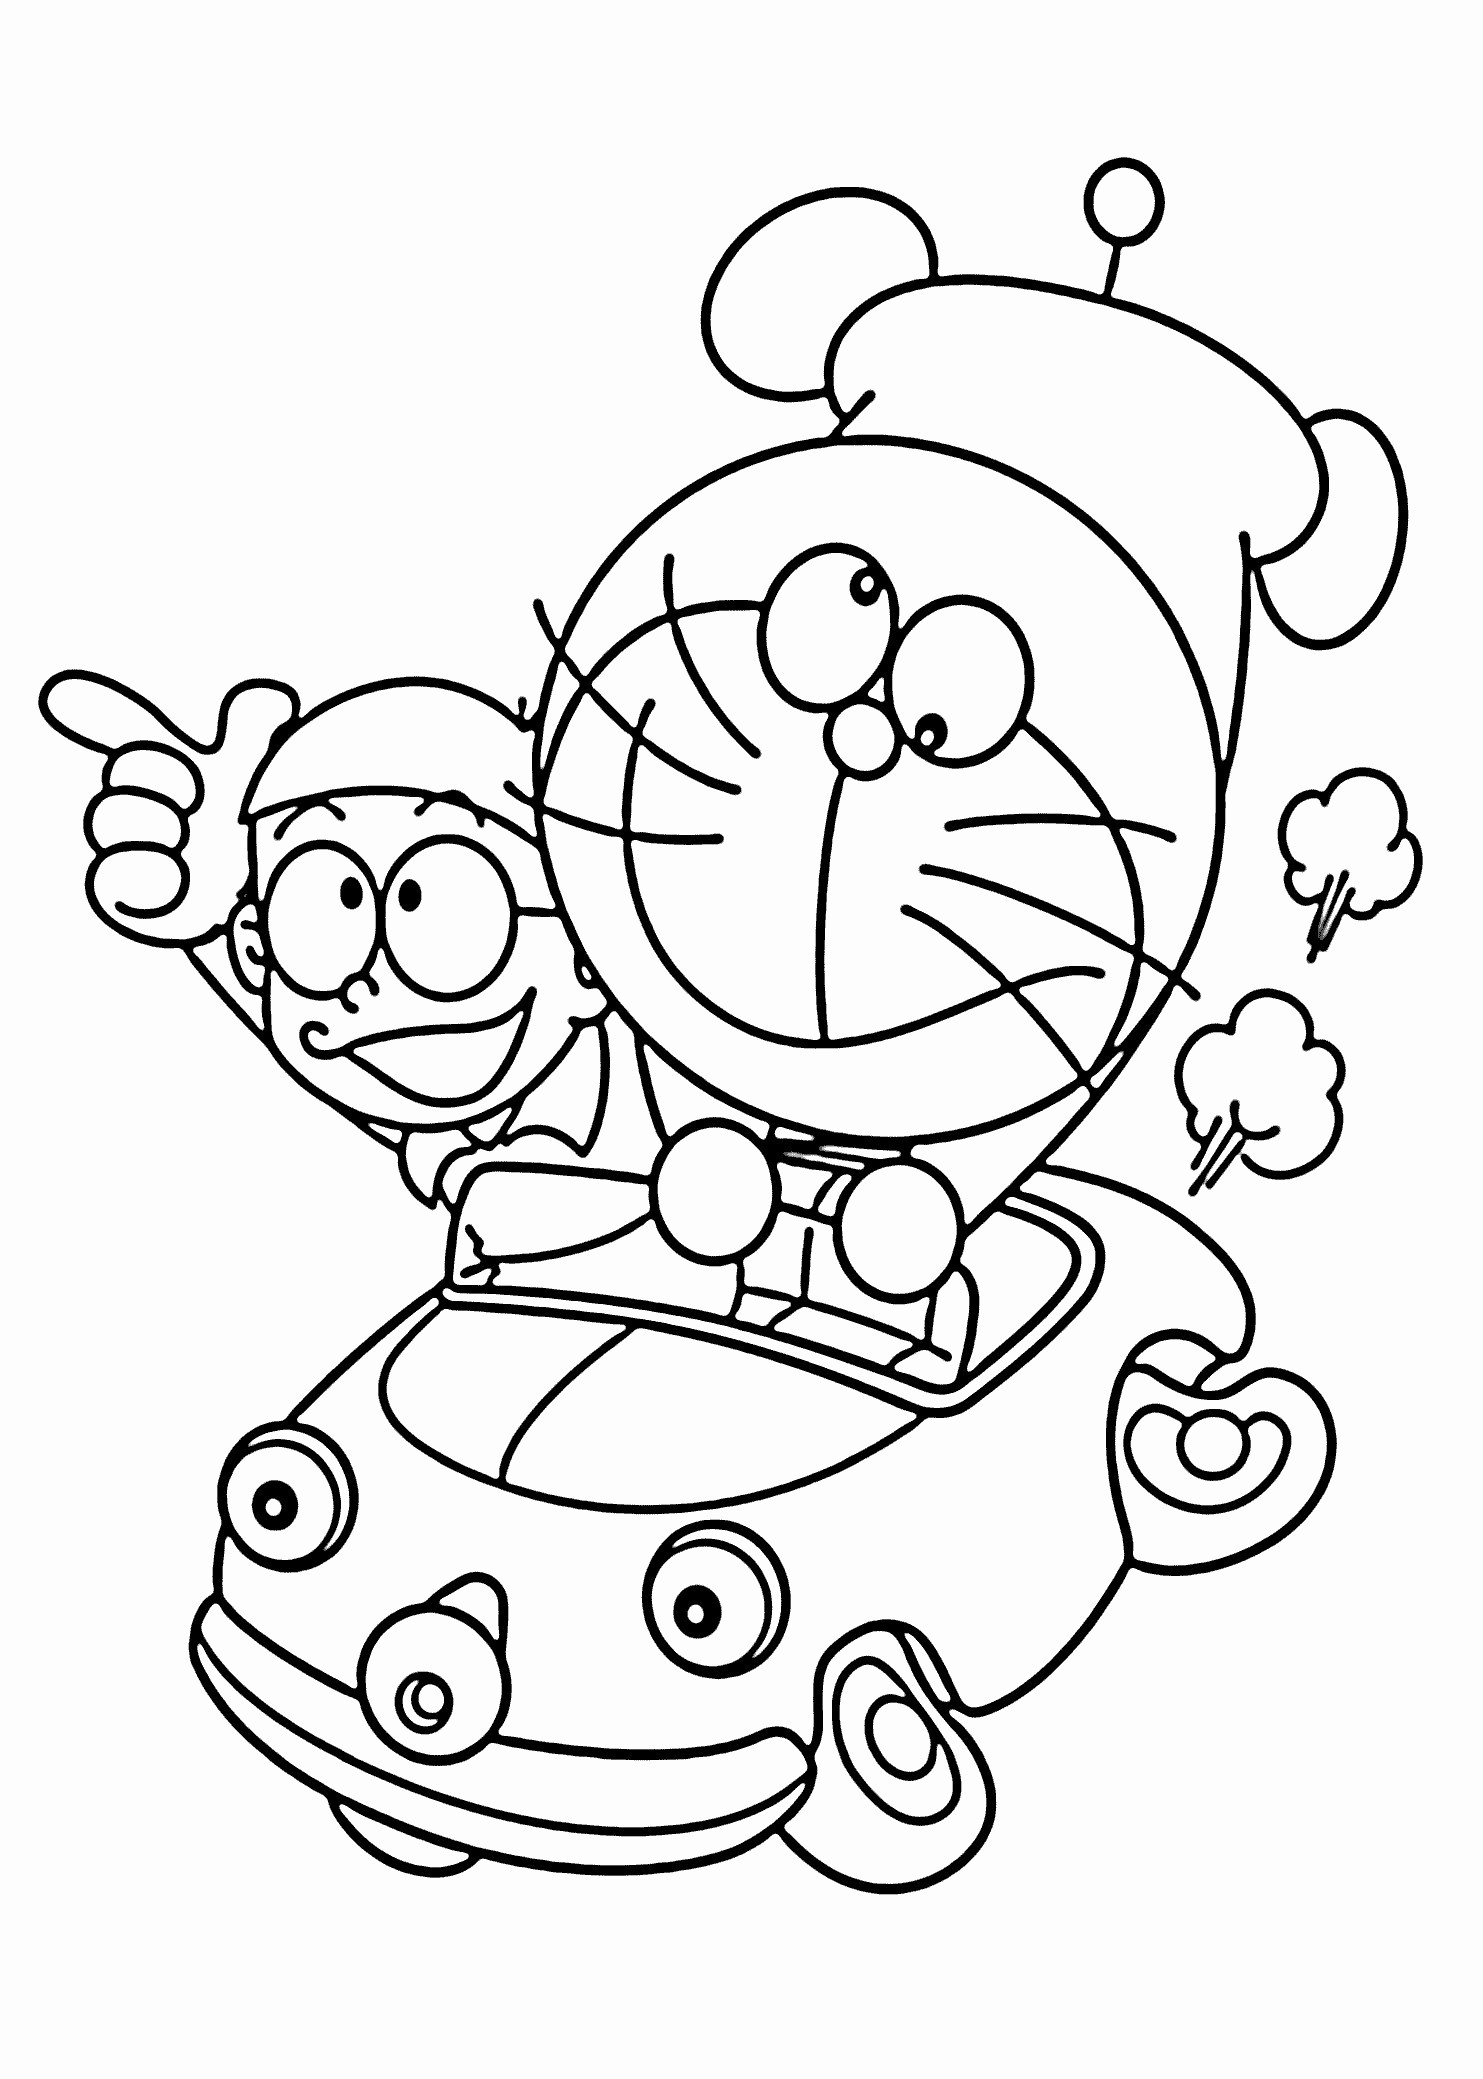 shopkins crayola coloring pages Collection-cuties coloring pages 17-r